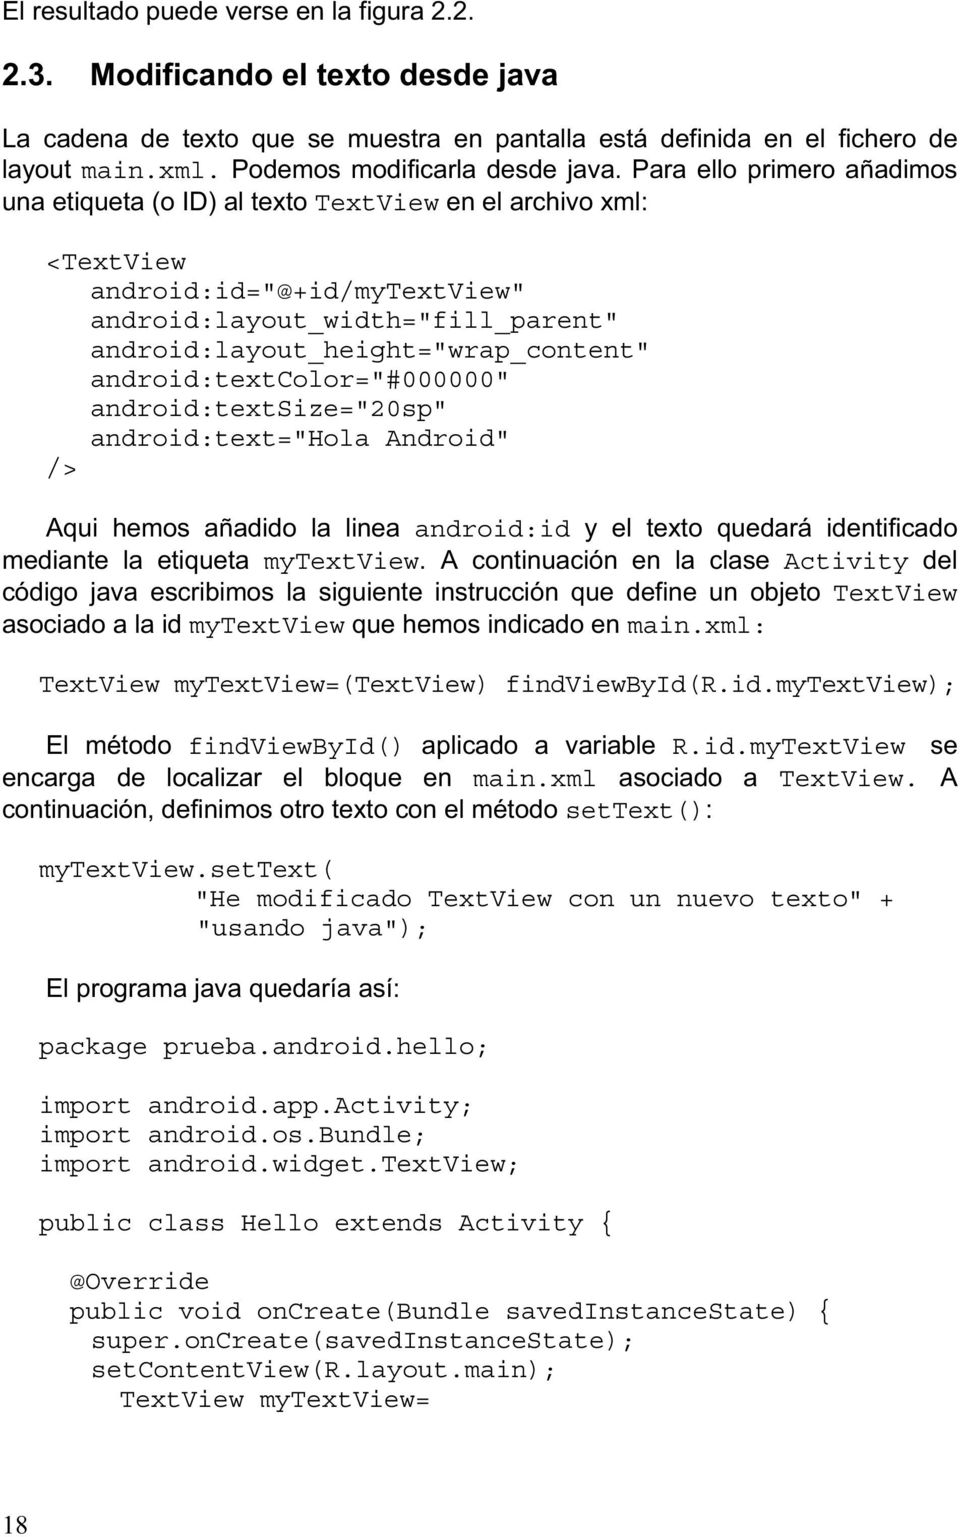 "Para ello primero añadimos una etiqueta (o ID) al texto TextView en el archivo xml: <TextView android:id=""@+id/mytextview"" android:layout_width=""fill_parent"" android:layout_height=""wrap_content"""